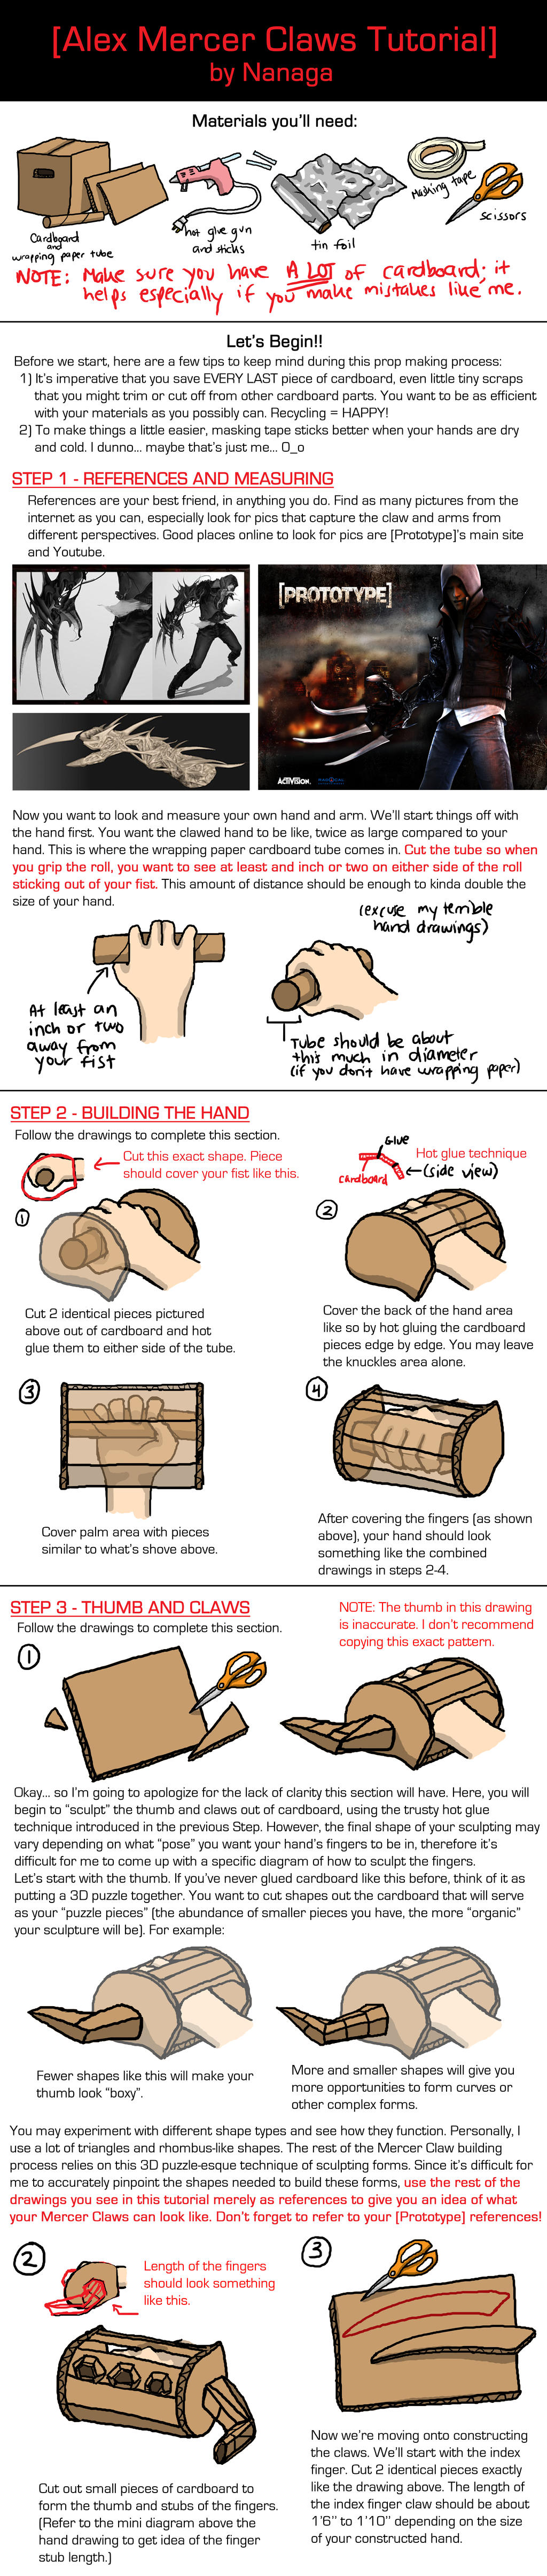 Mercer claws tutorial part 1 by nanaga on deviantart for Mercer available loads